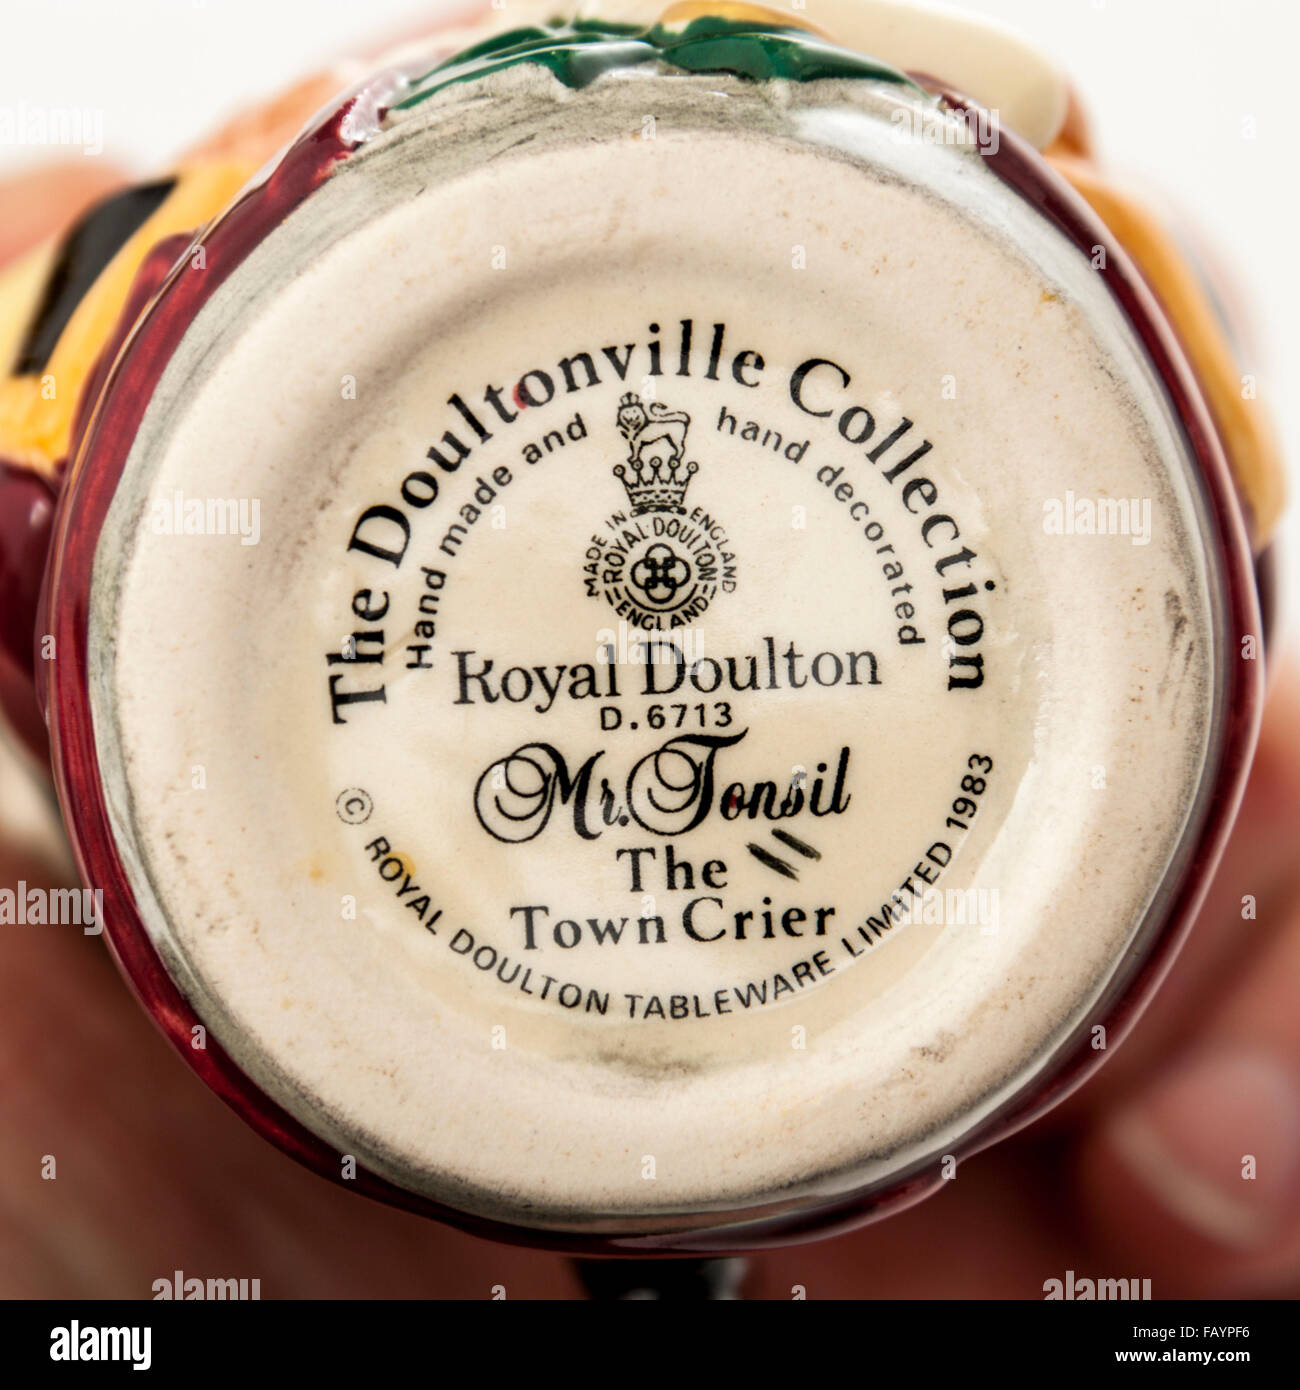 Backstamp of vintage Toby / character jug (D6713) 'Mr Tonsil, The Town Crier' by Royal Doulton. Designed - Stock Image